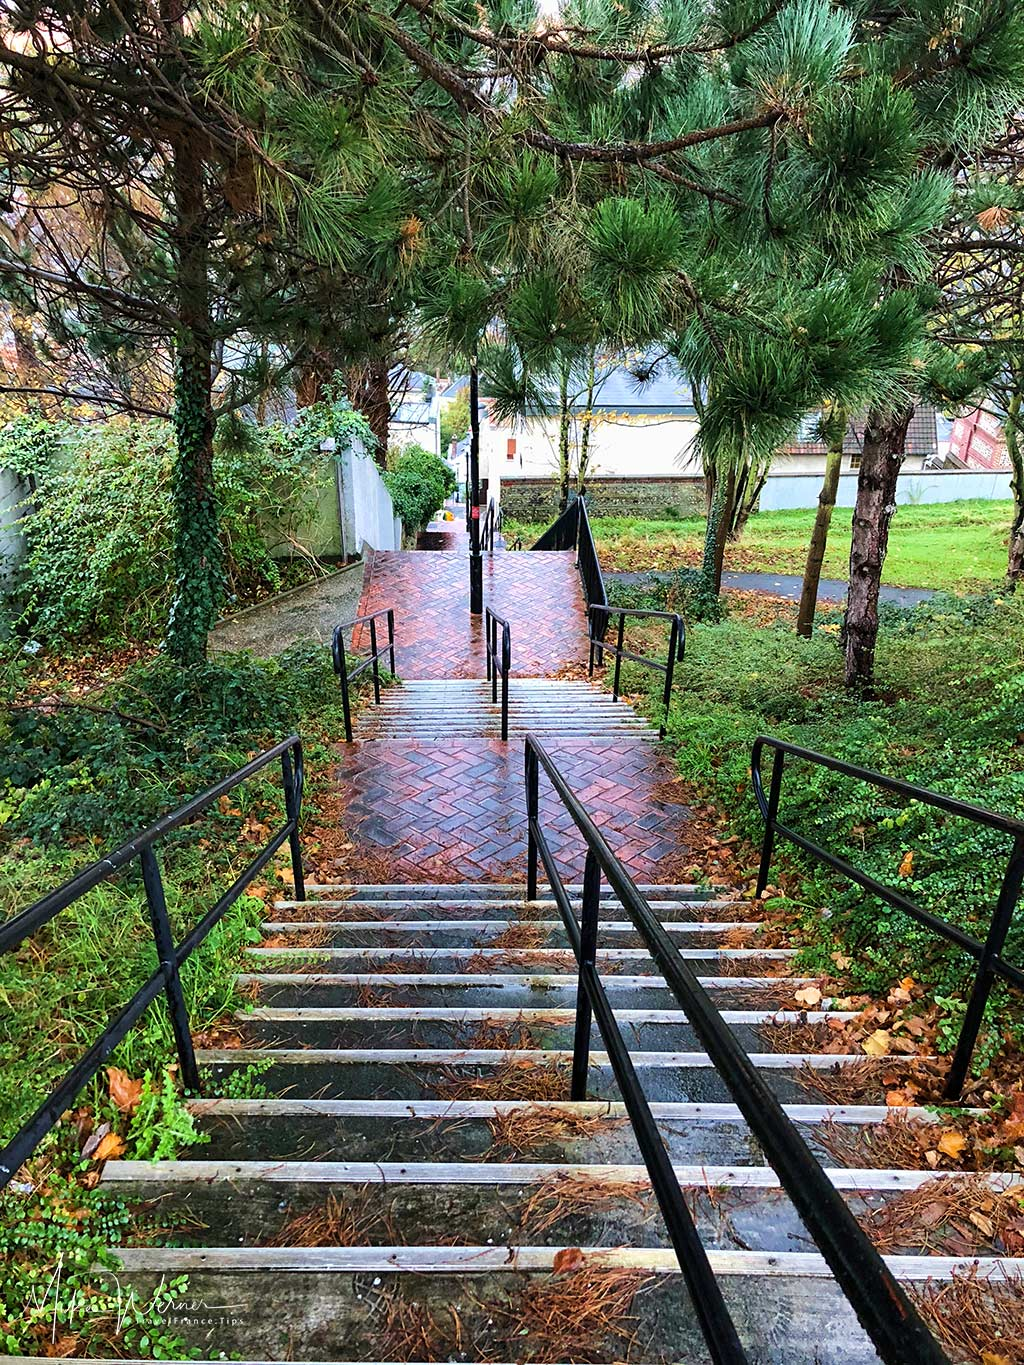 """The """"Impasse-du-Beau-Site"""" stairway that brings you to one of the big high schools of Le Havre"""